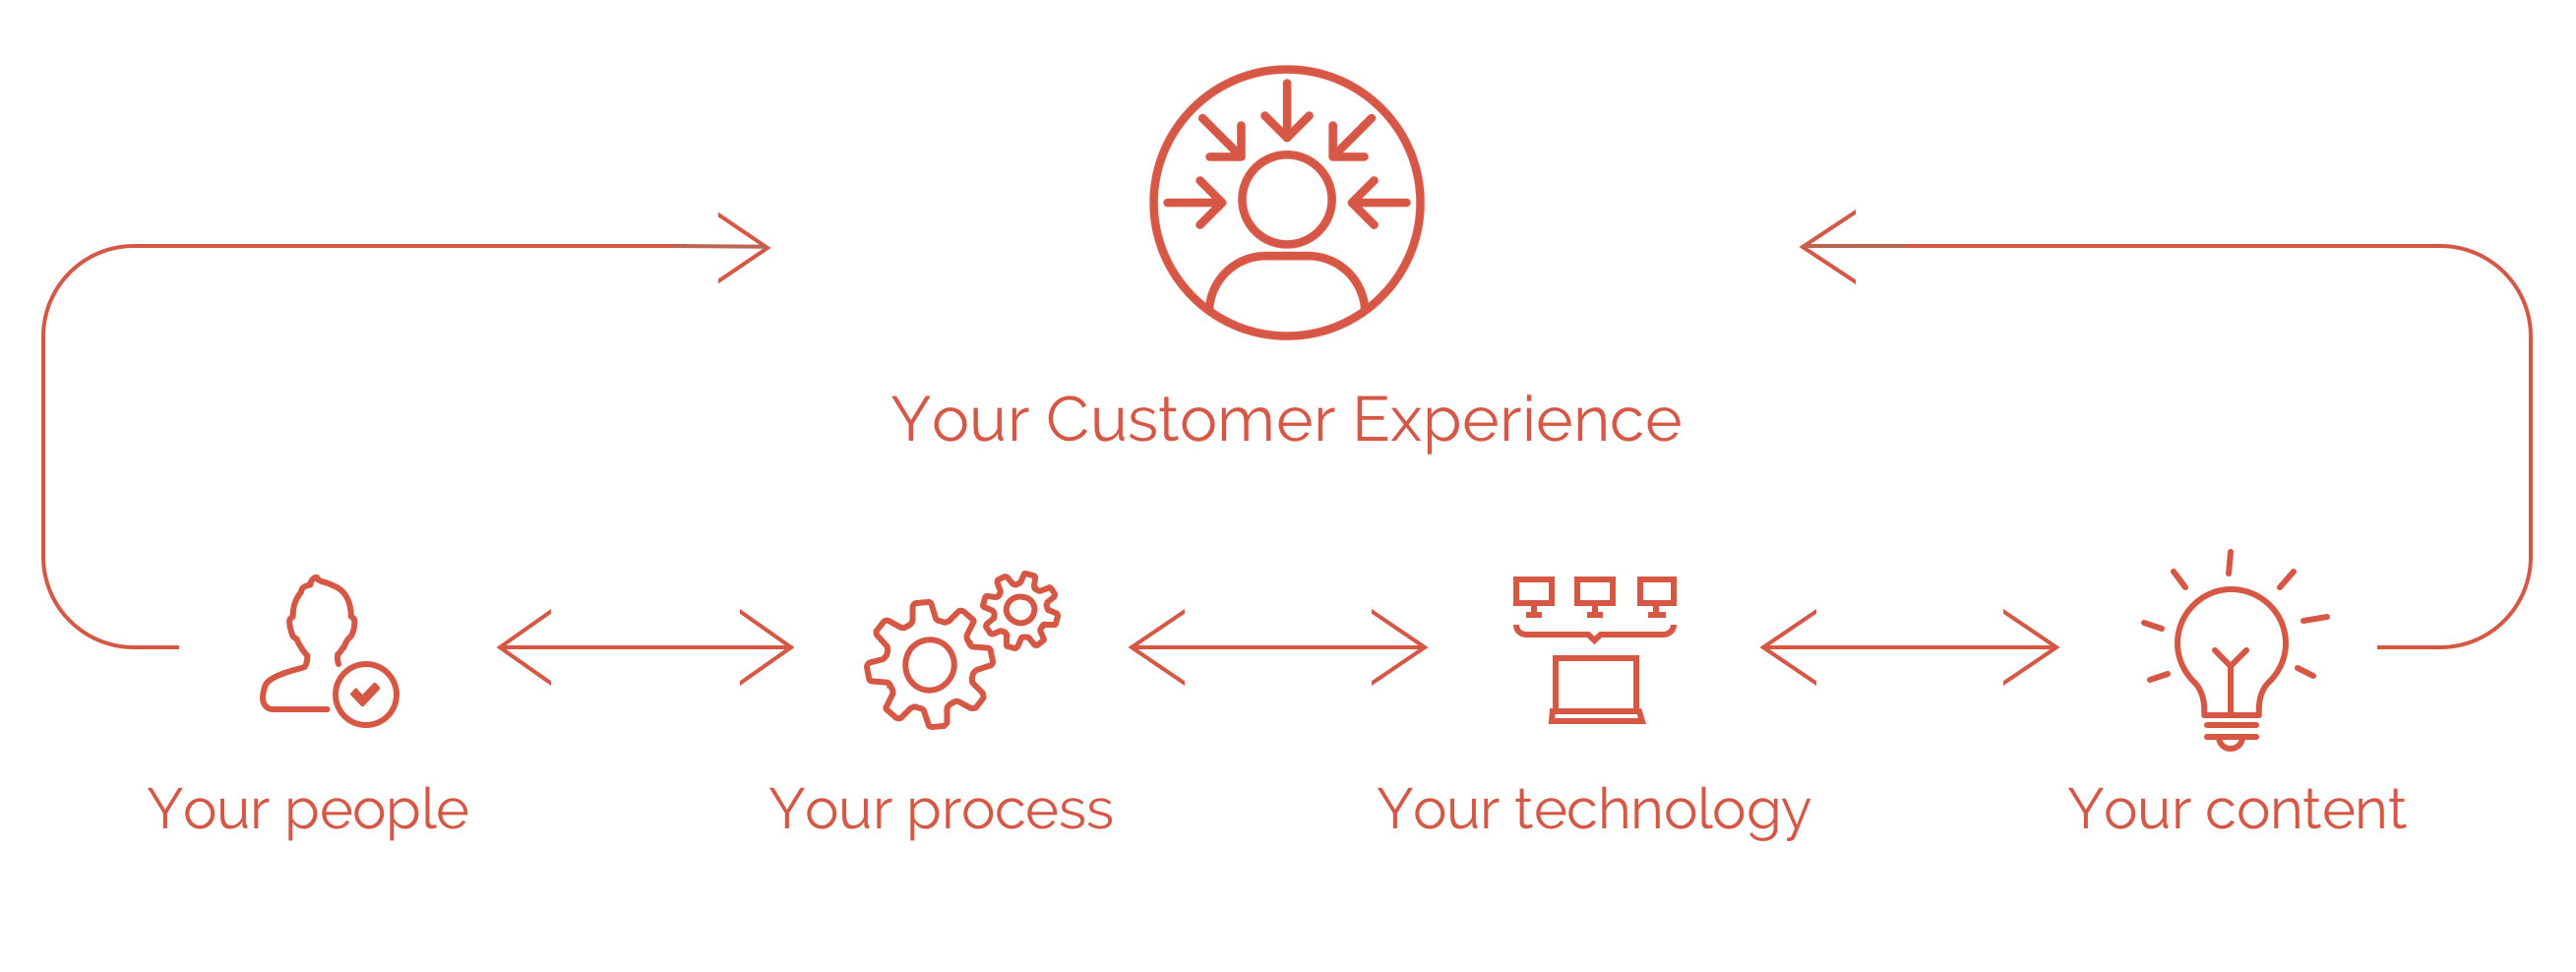 Copper Marketing Customer Experience